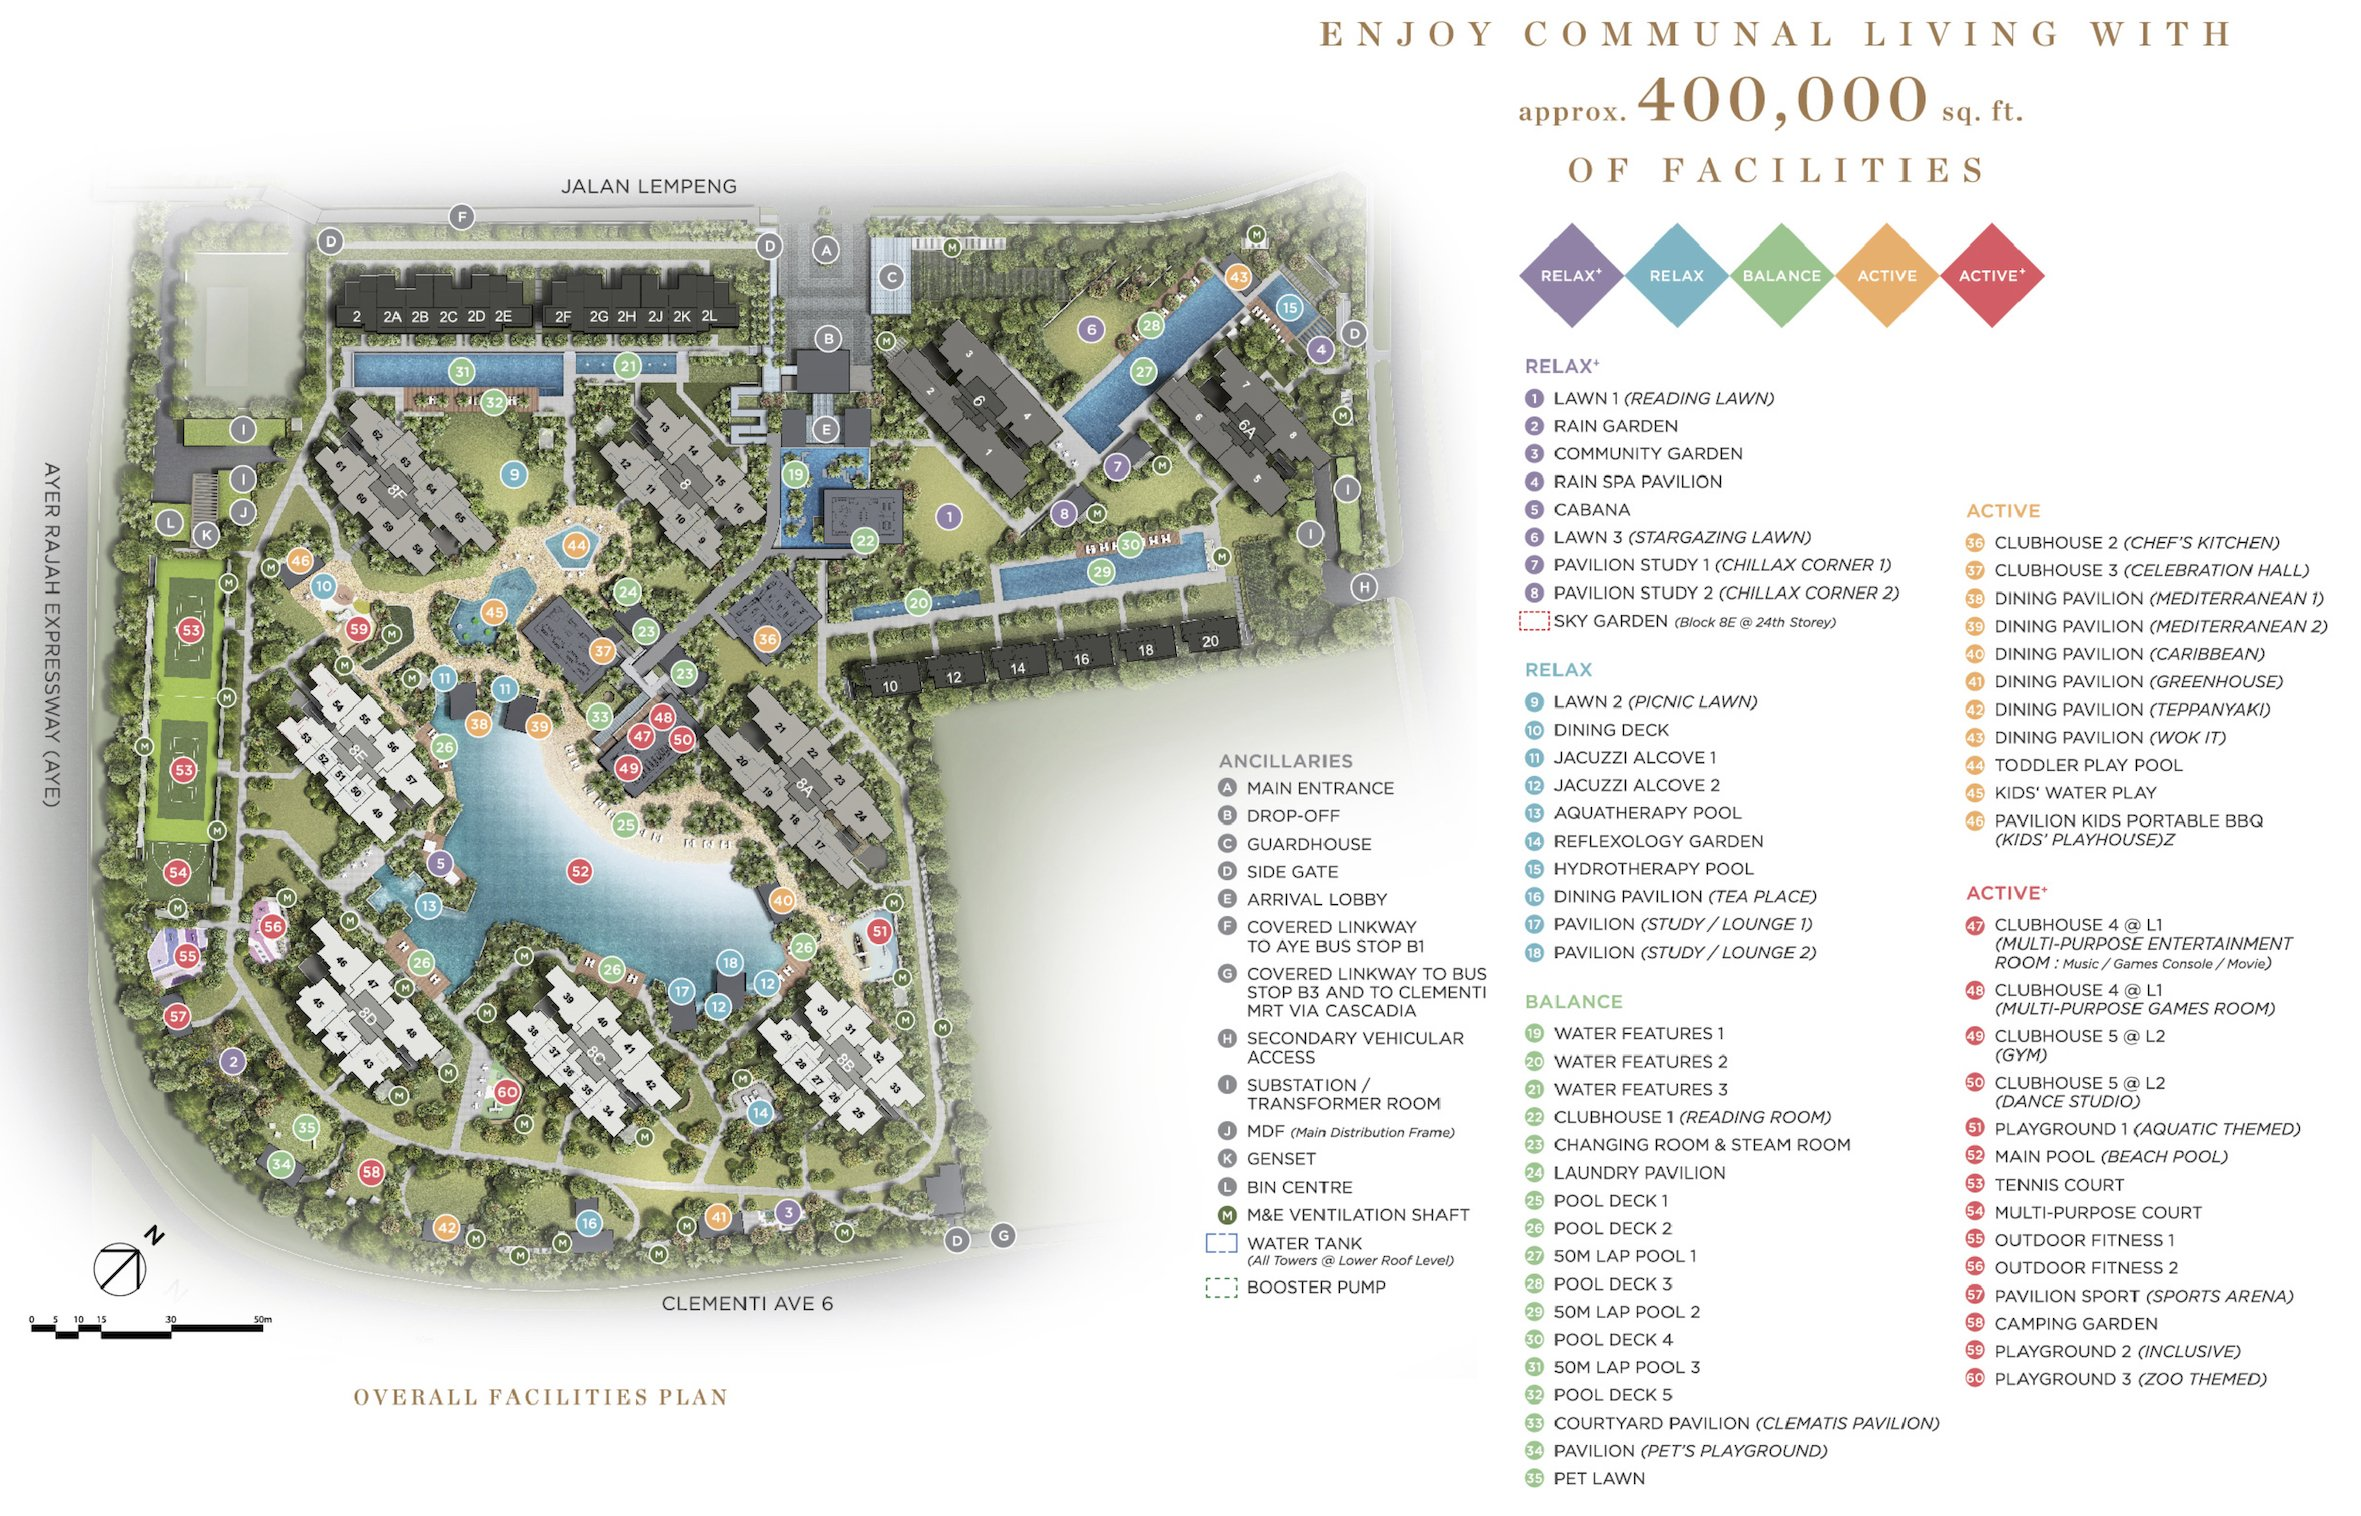 Parc Clematis 锦泰门第 site plan facilities